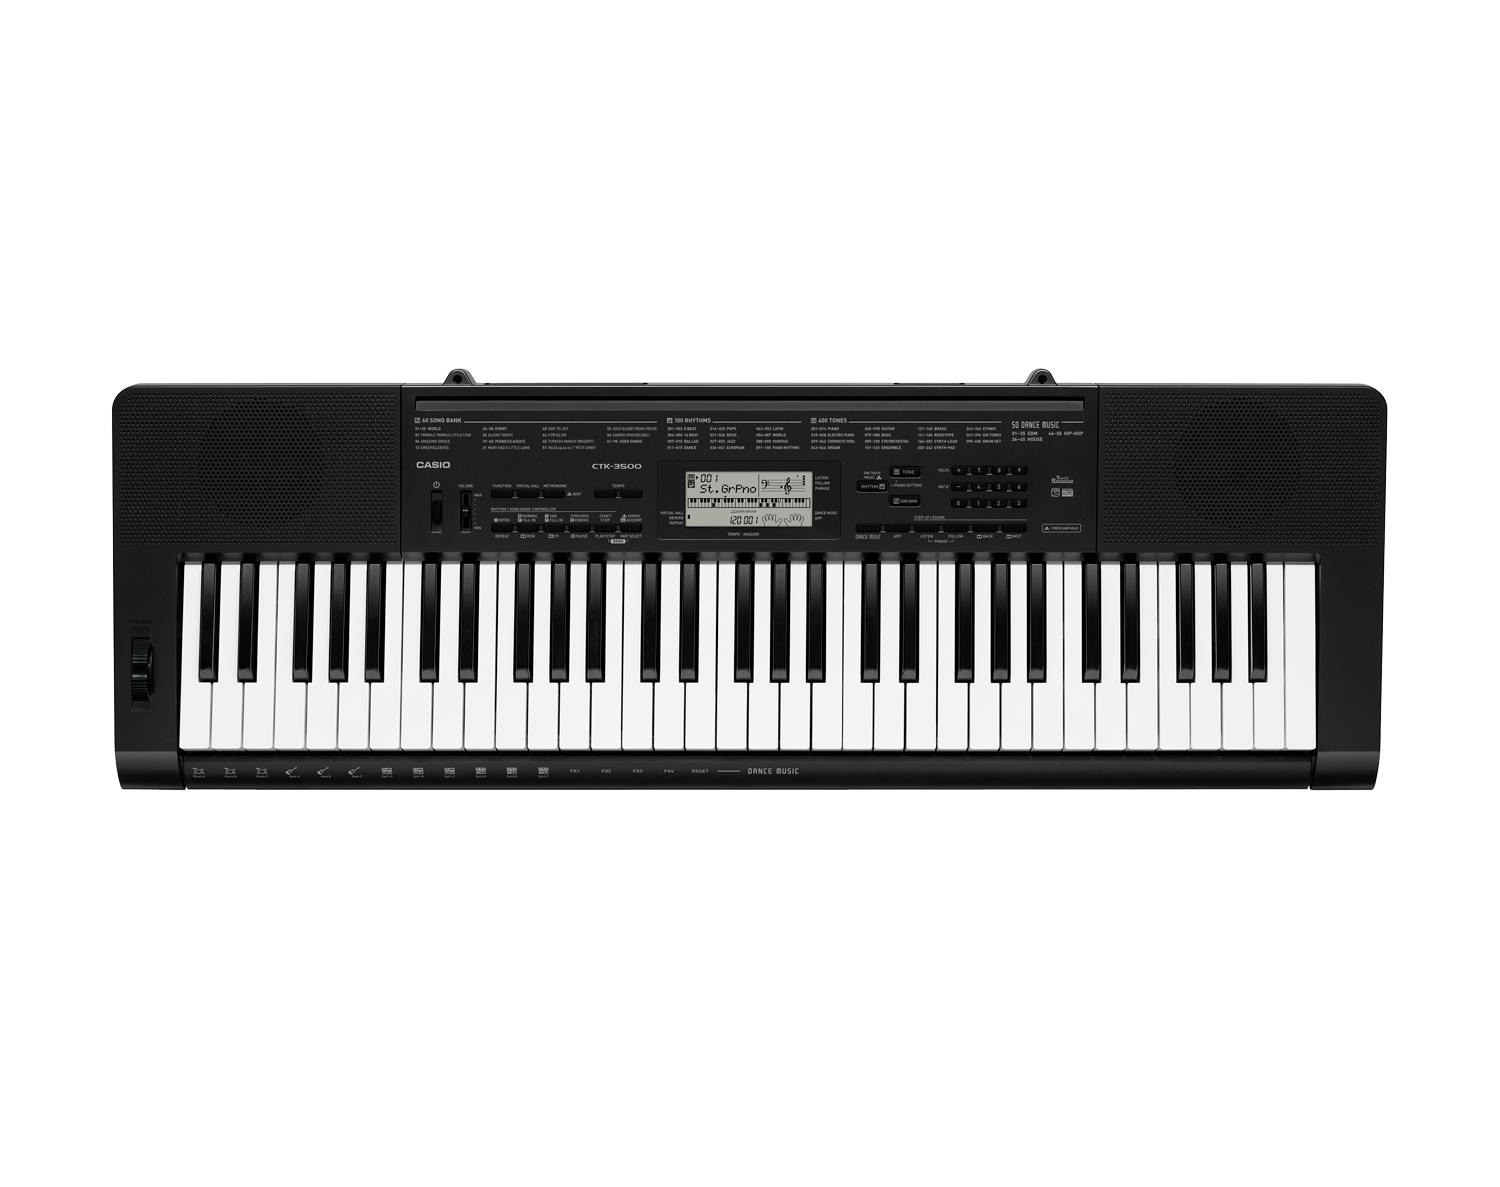 Casio CTK-3500 full size keyboard image top